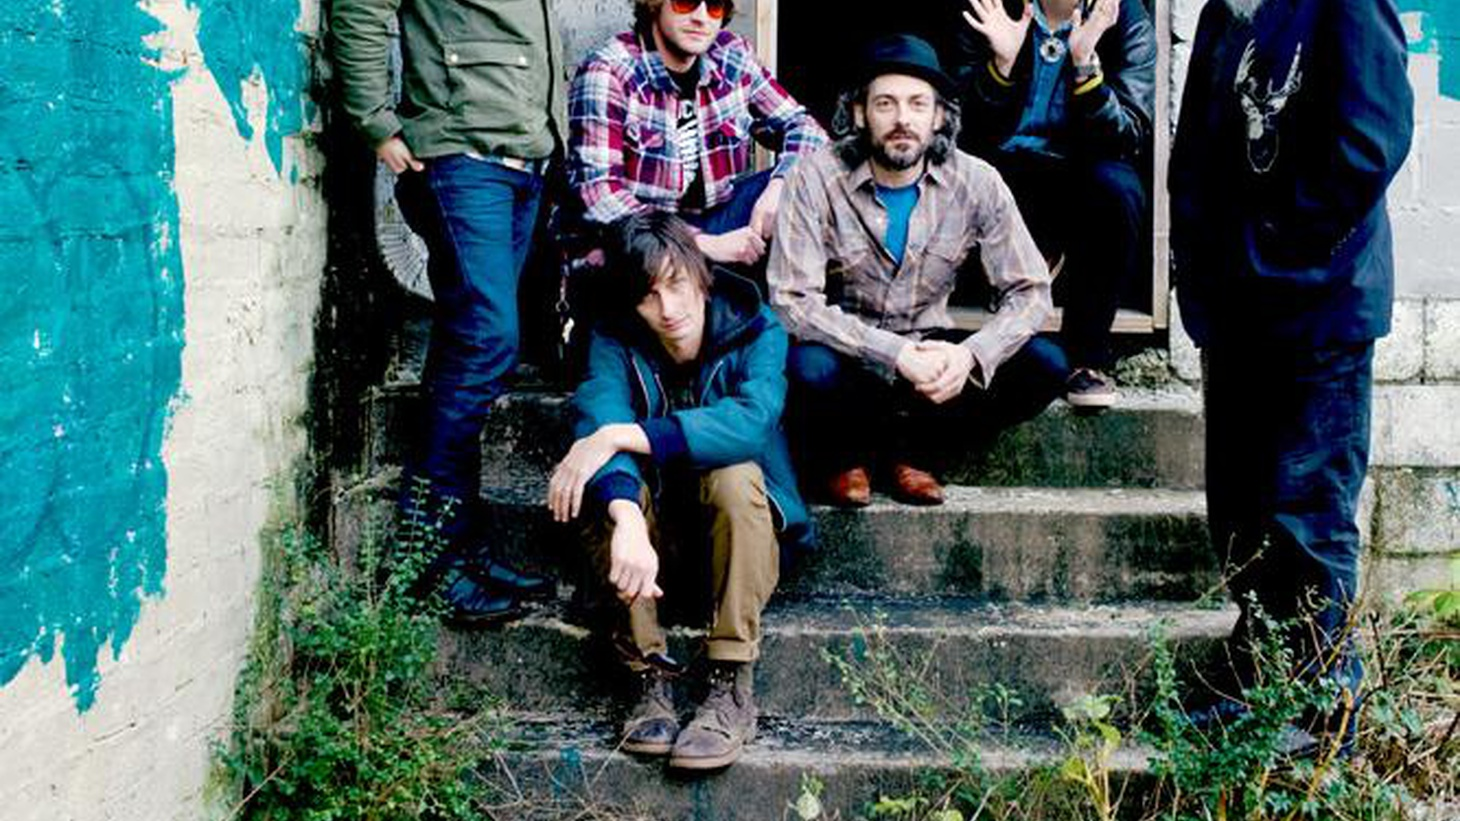 Diamond Rugs is an indie rock super group of sorts with members of Deer Tick, The Black Lips and Los Lobos' Steve Berlin. They've rolled out their debut...